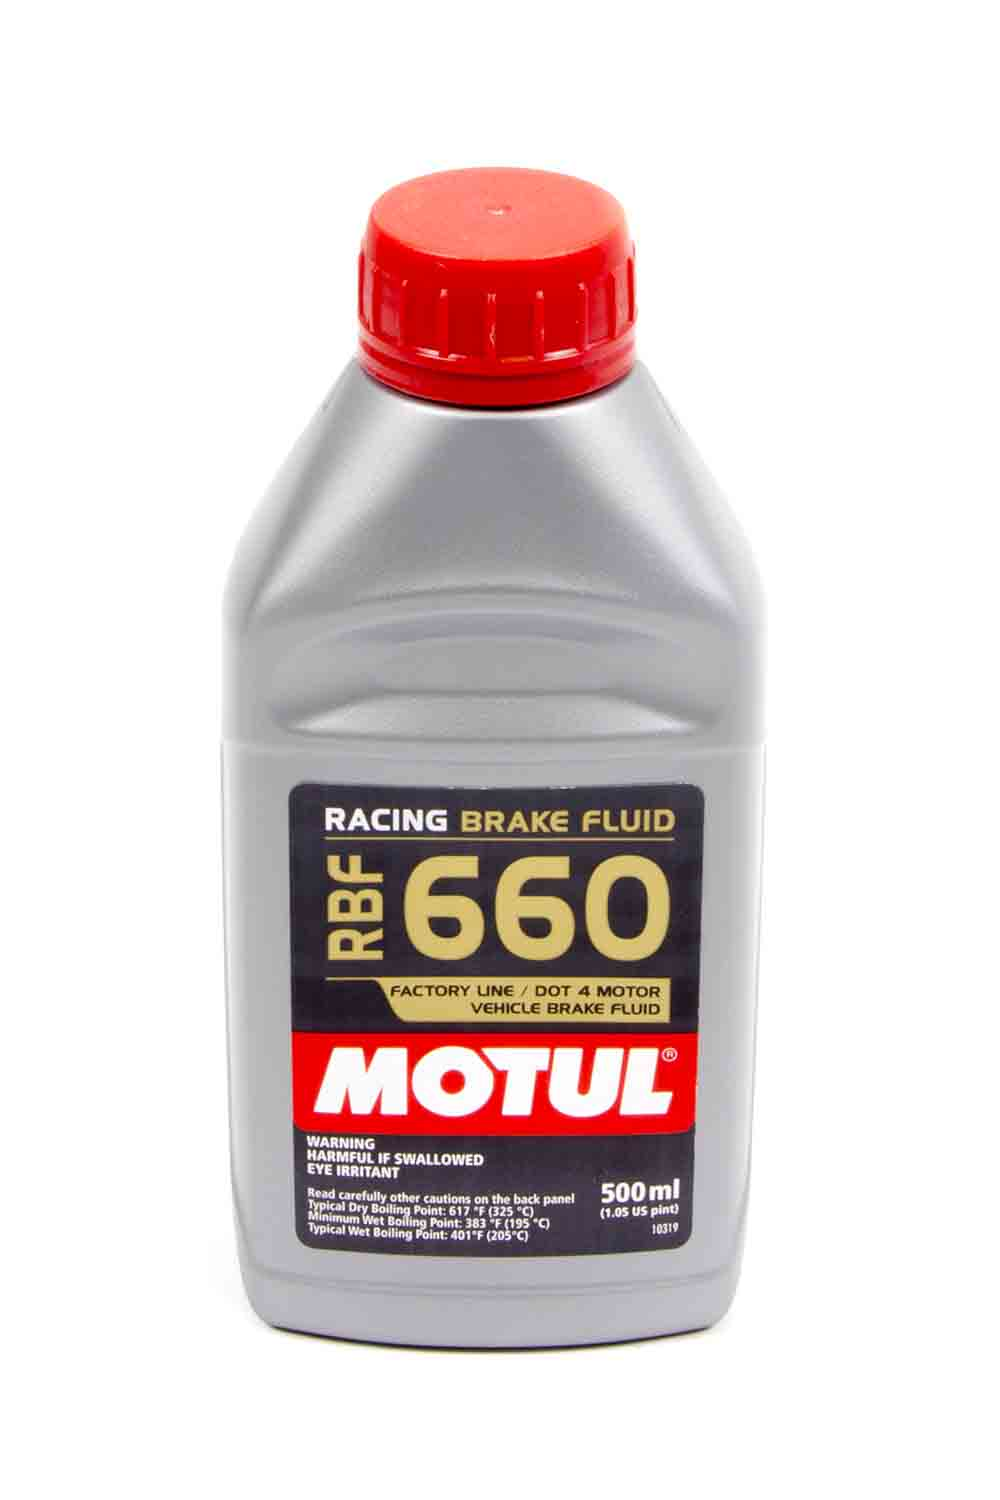 Allstar Performance Motul 660 DOT 4 Brake Fluid 16.9 oz Each P N 78118 by ALLSTAR PERFORMANCE